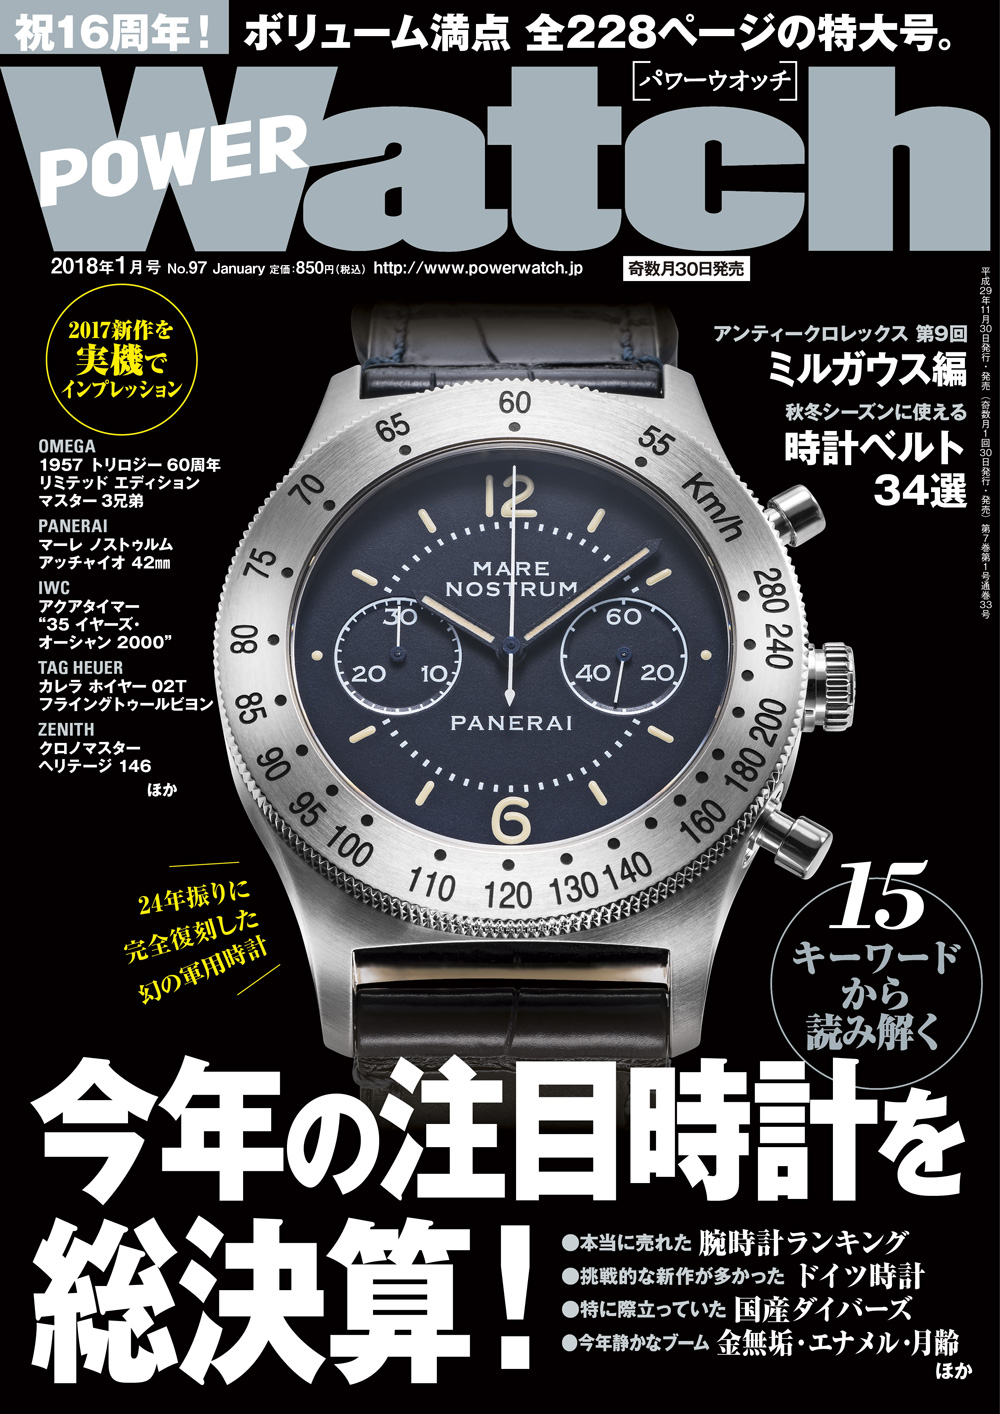 C's-Factory|電子書籍|POWER Watch No.97